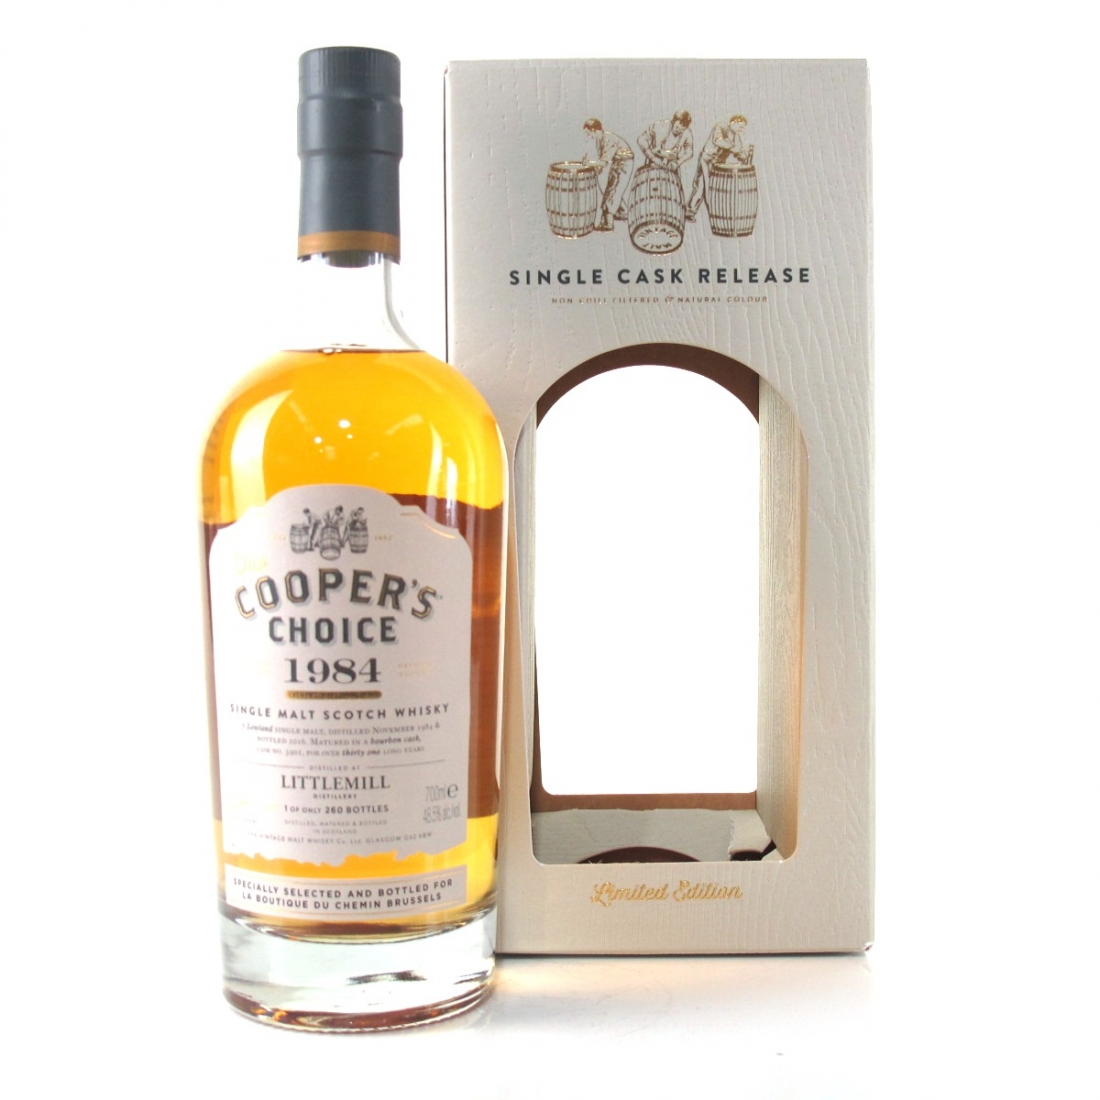 Littlemill 1984 Cooper's Choice 31 Year Old